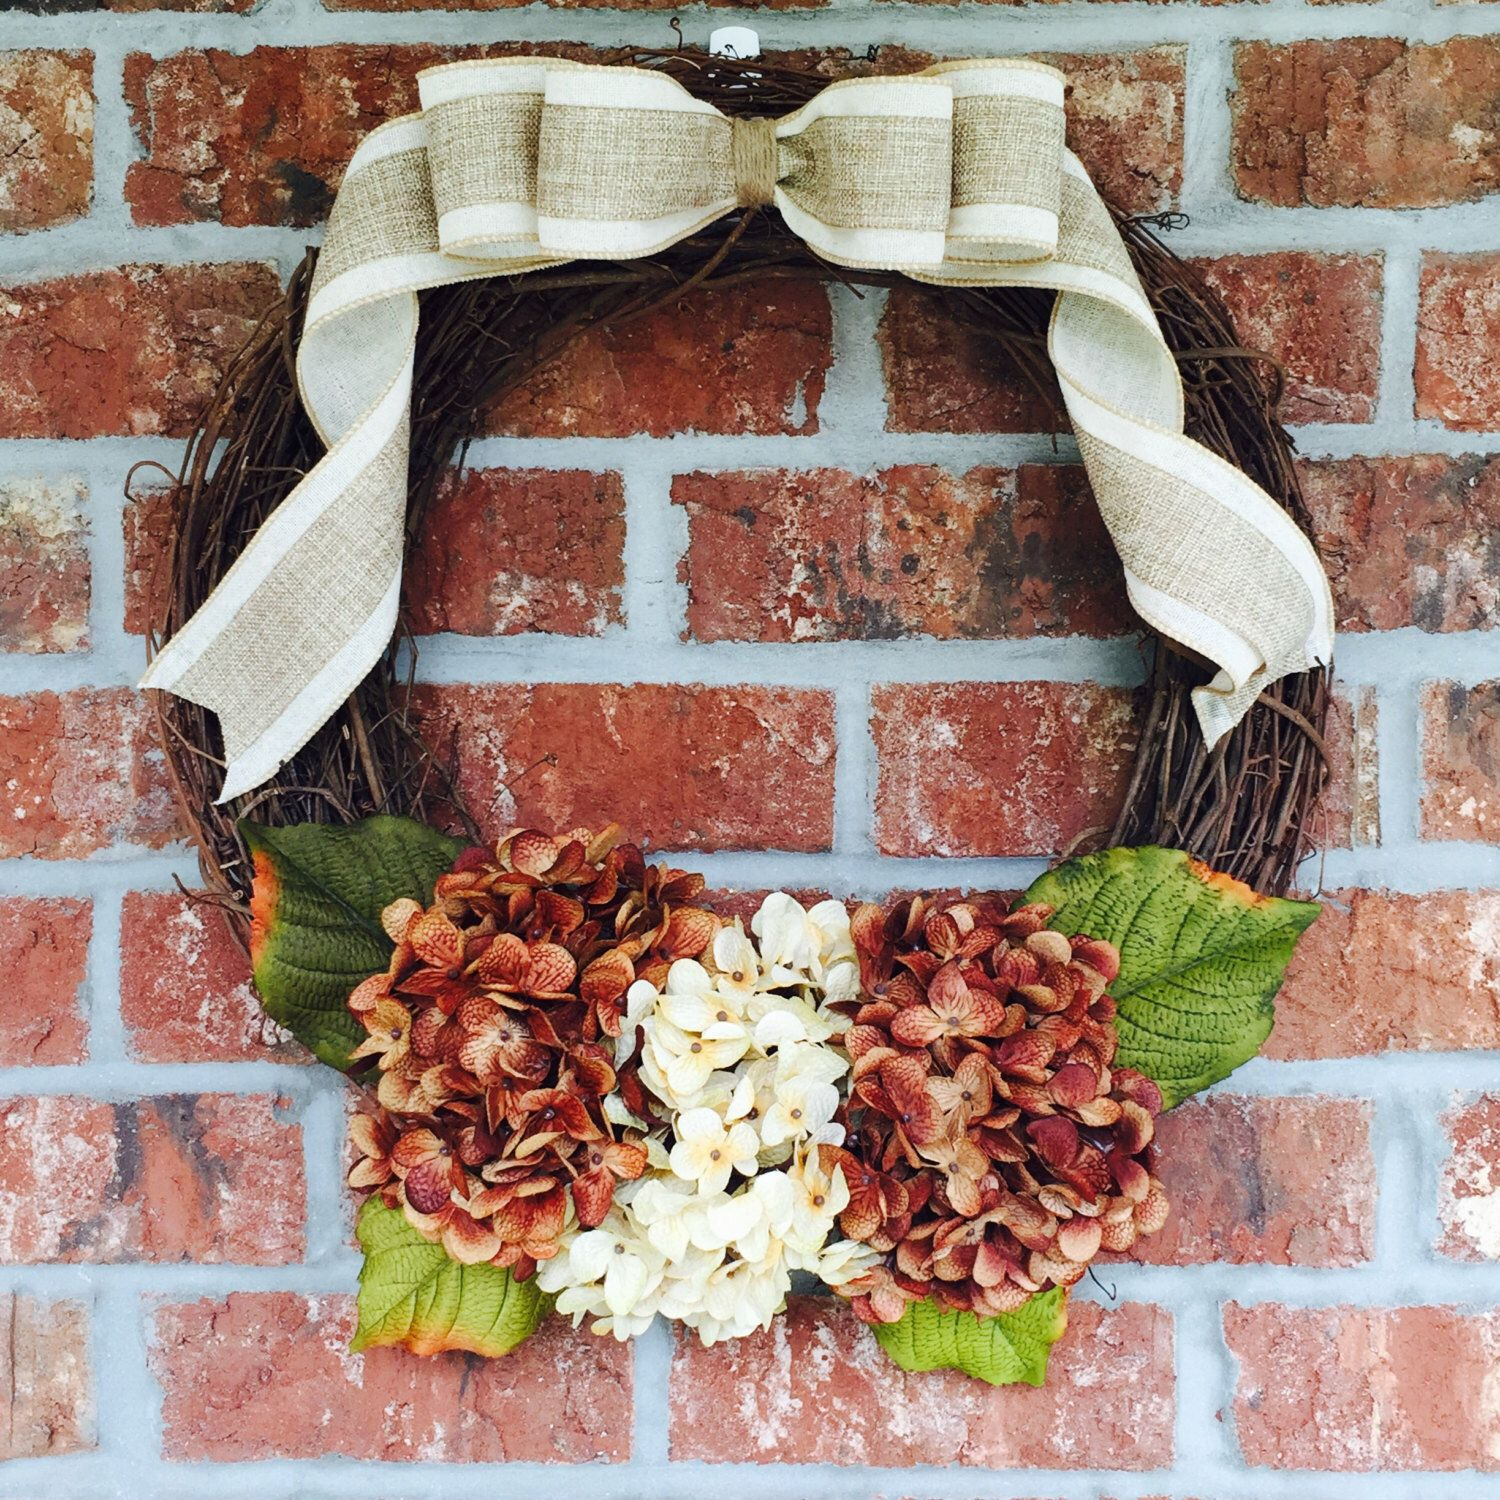 """18"""" Grapevine Wreath with Hydrangea Accents and Burlap Ribbon Bow by TheWhiteBow on Etsy https://www.etsy.com/listing/242684624/18-grapevine-wreath-with-hydrangea"""